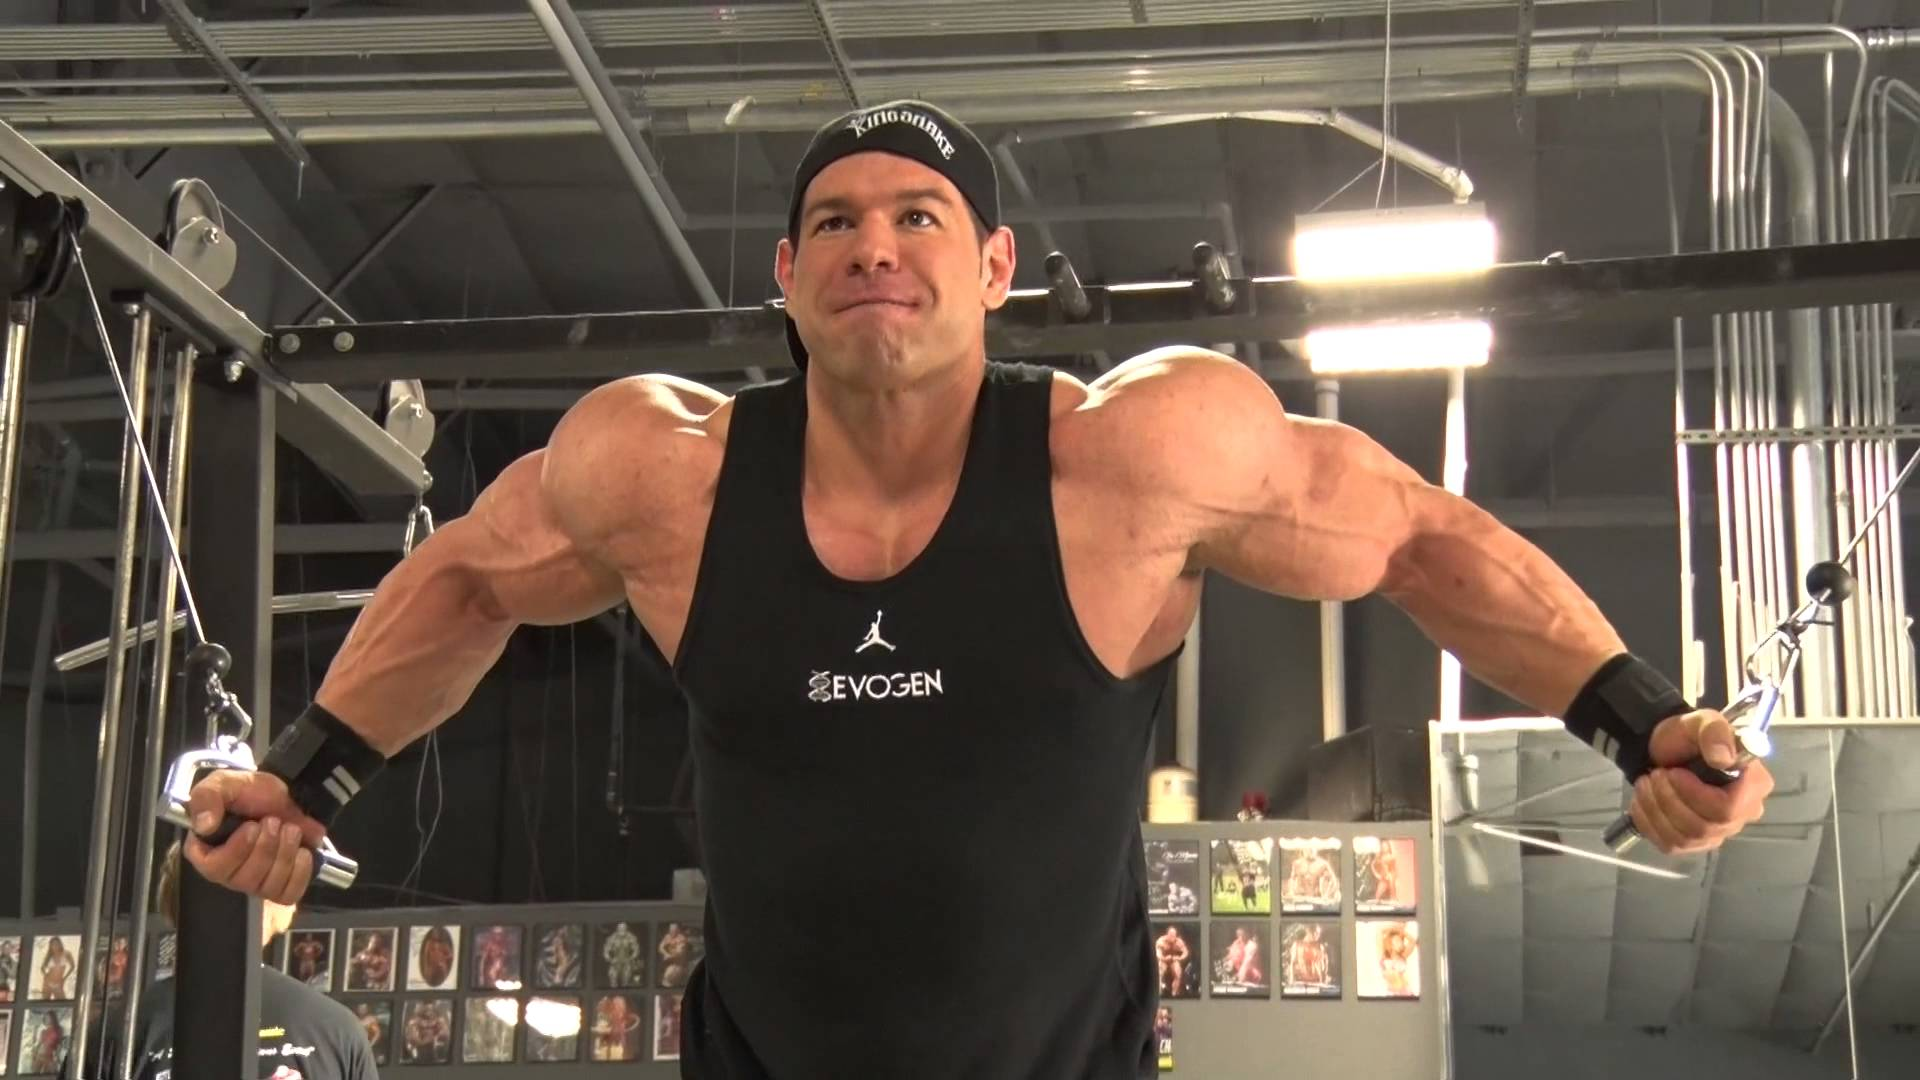 Steve Kuclo – Coming Soon to Musculardevelopment!